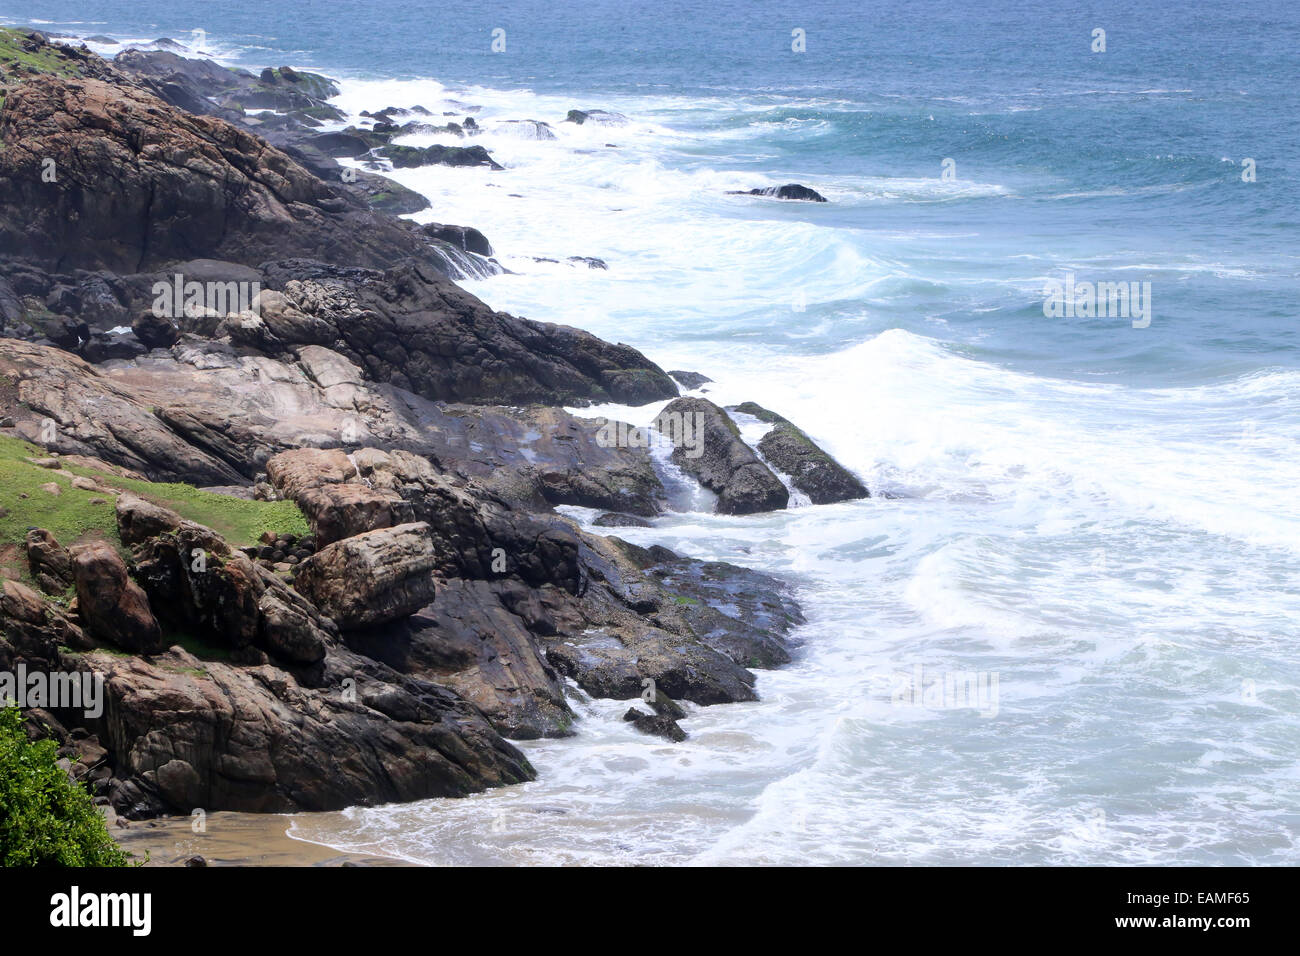 Vizhinjam, Thiruvananthapuram, Kerala, Indian - Stock Image